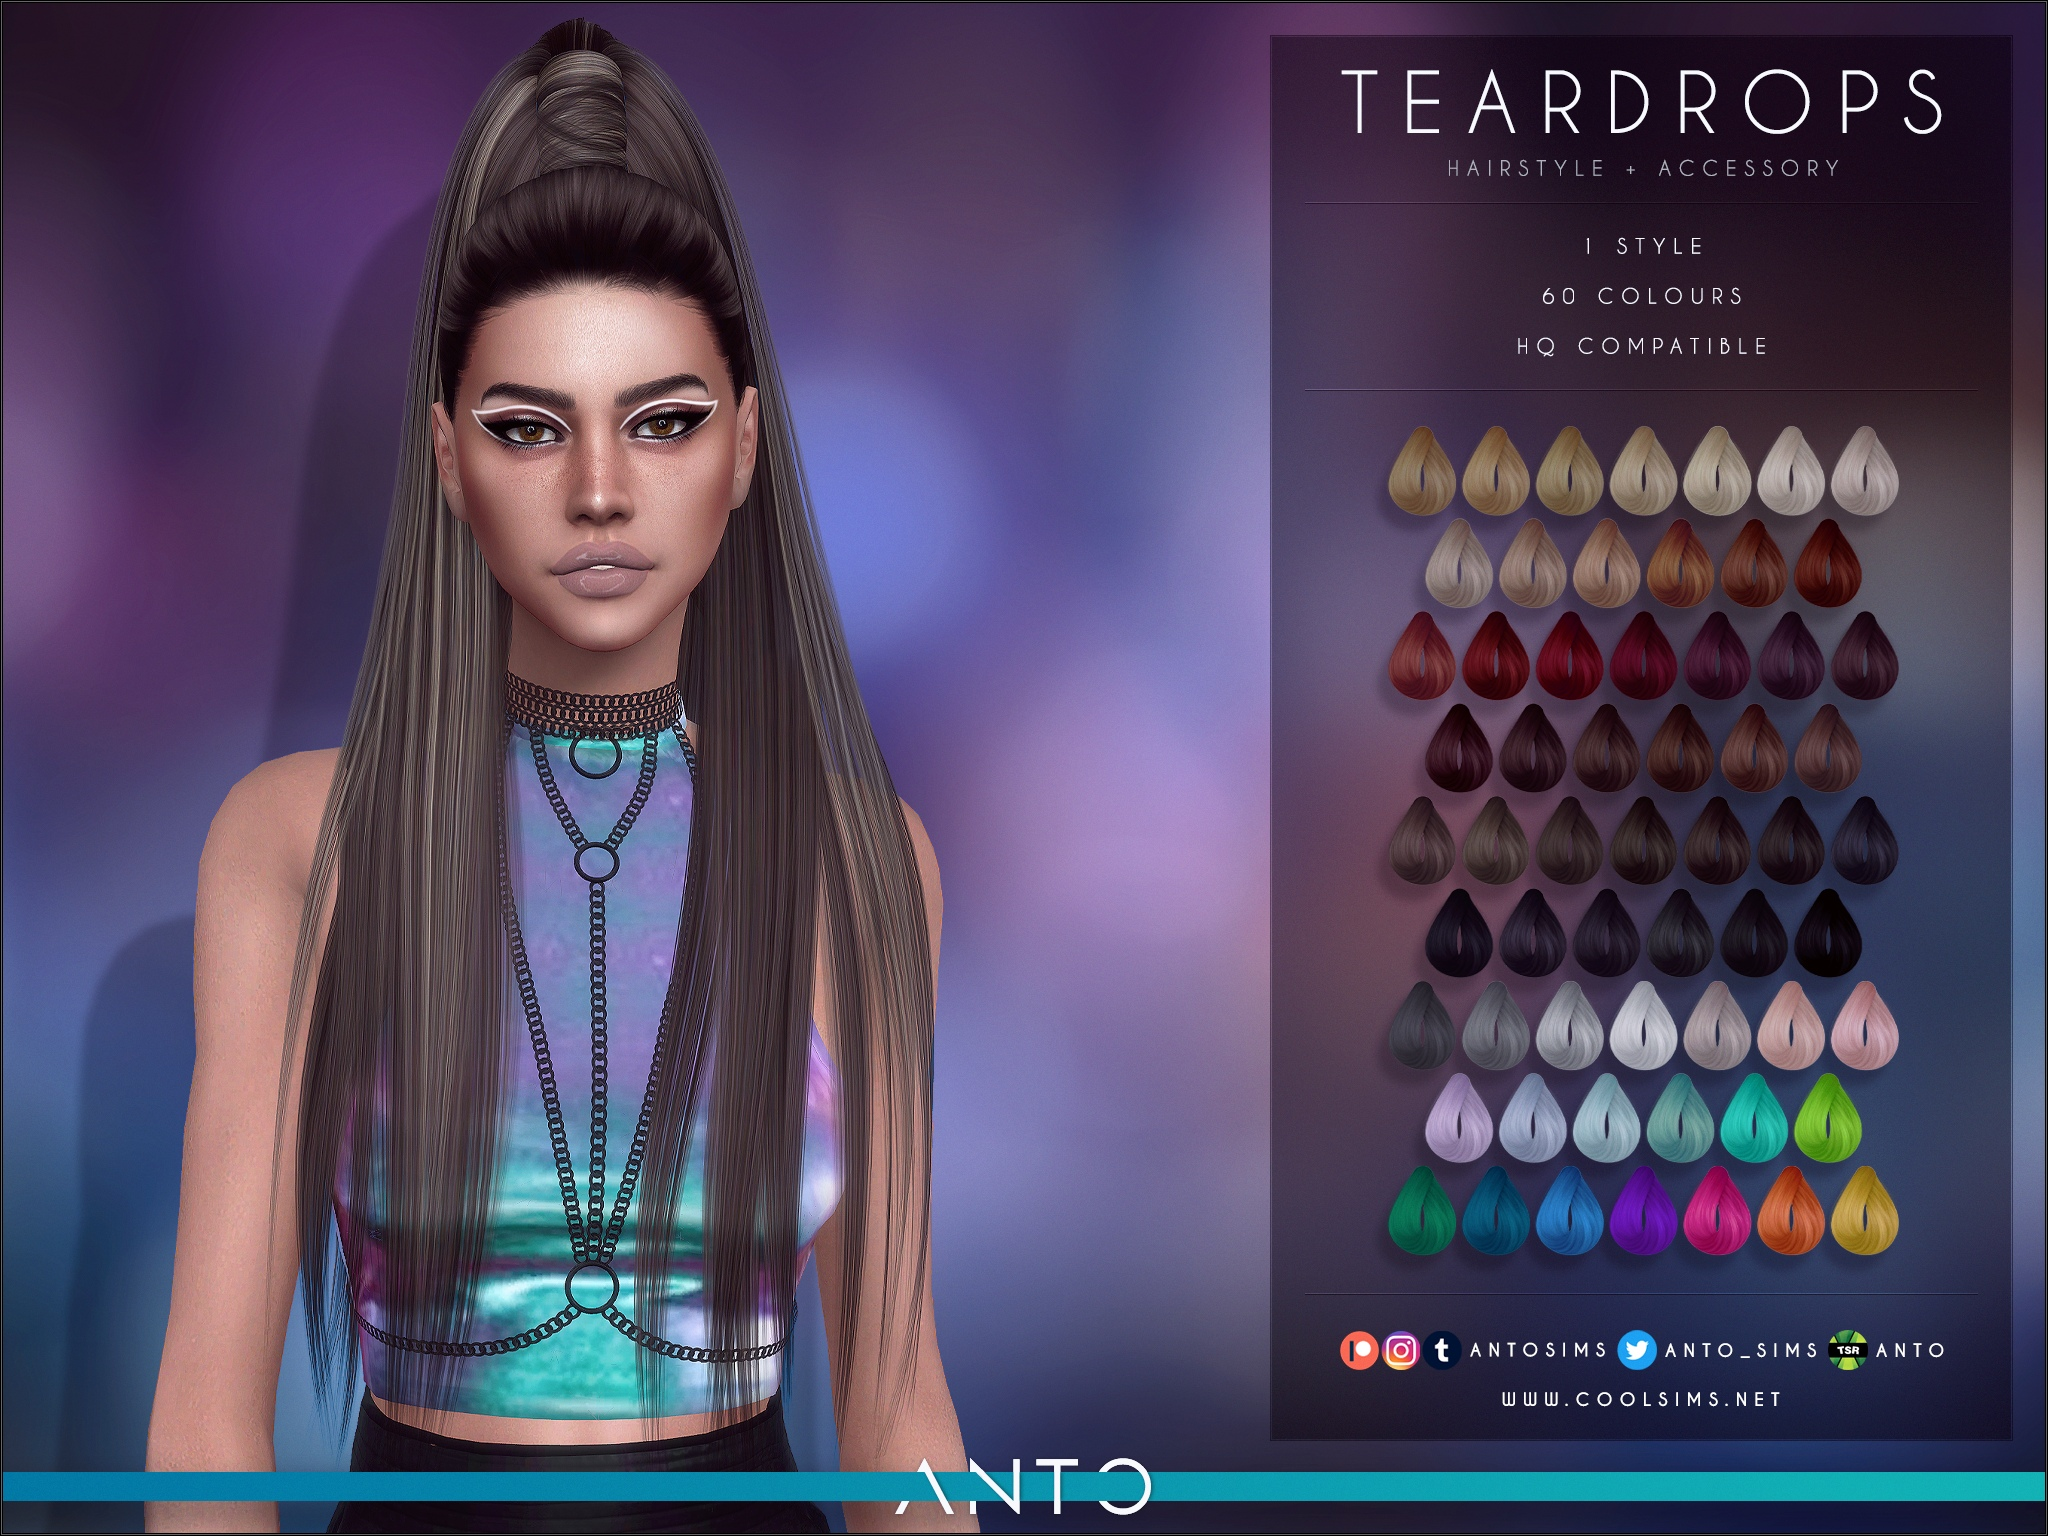 Teardrops Hairstyle by Anto